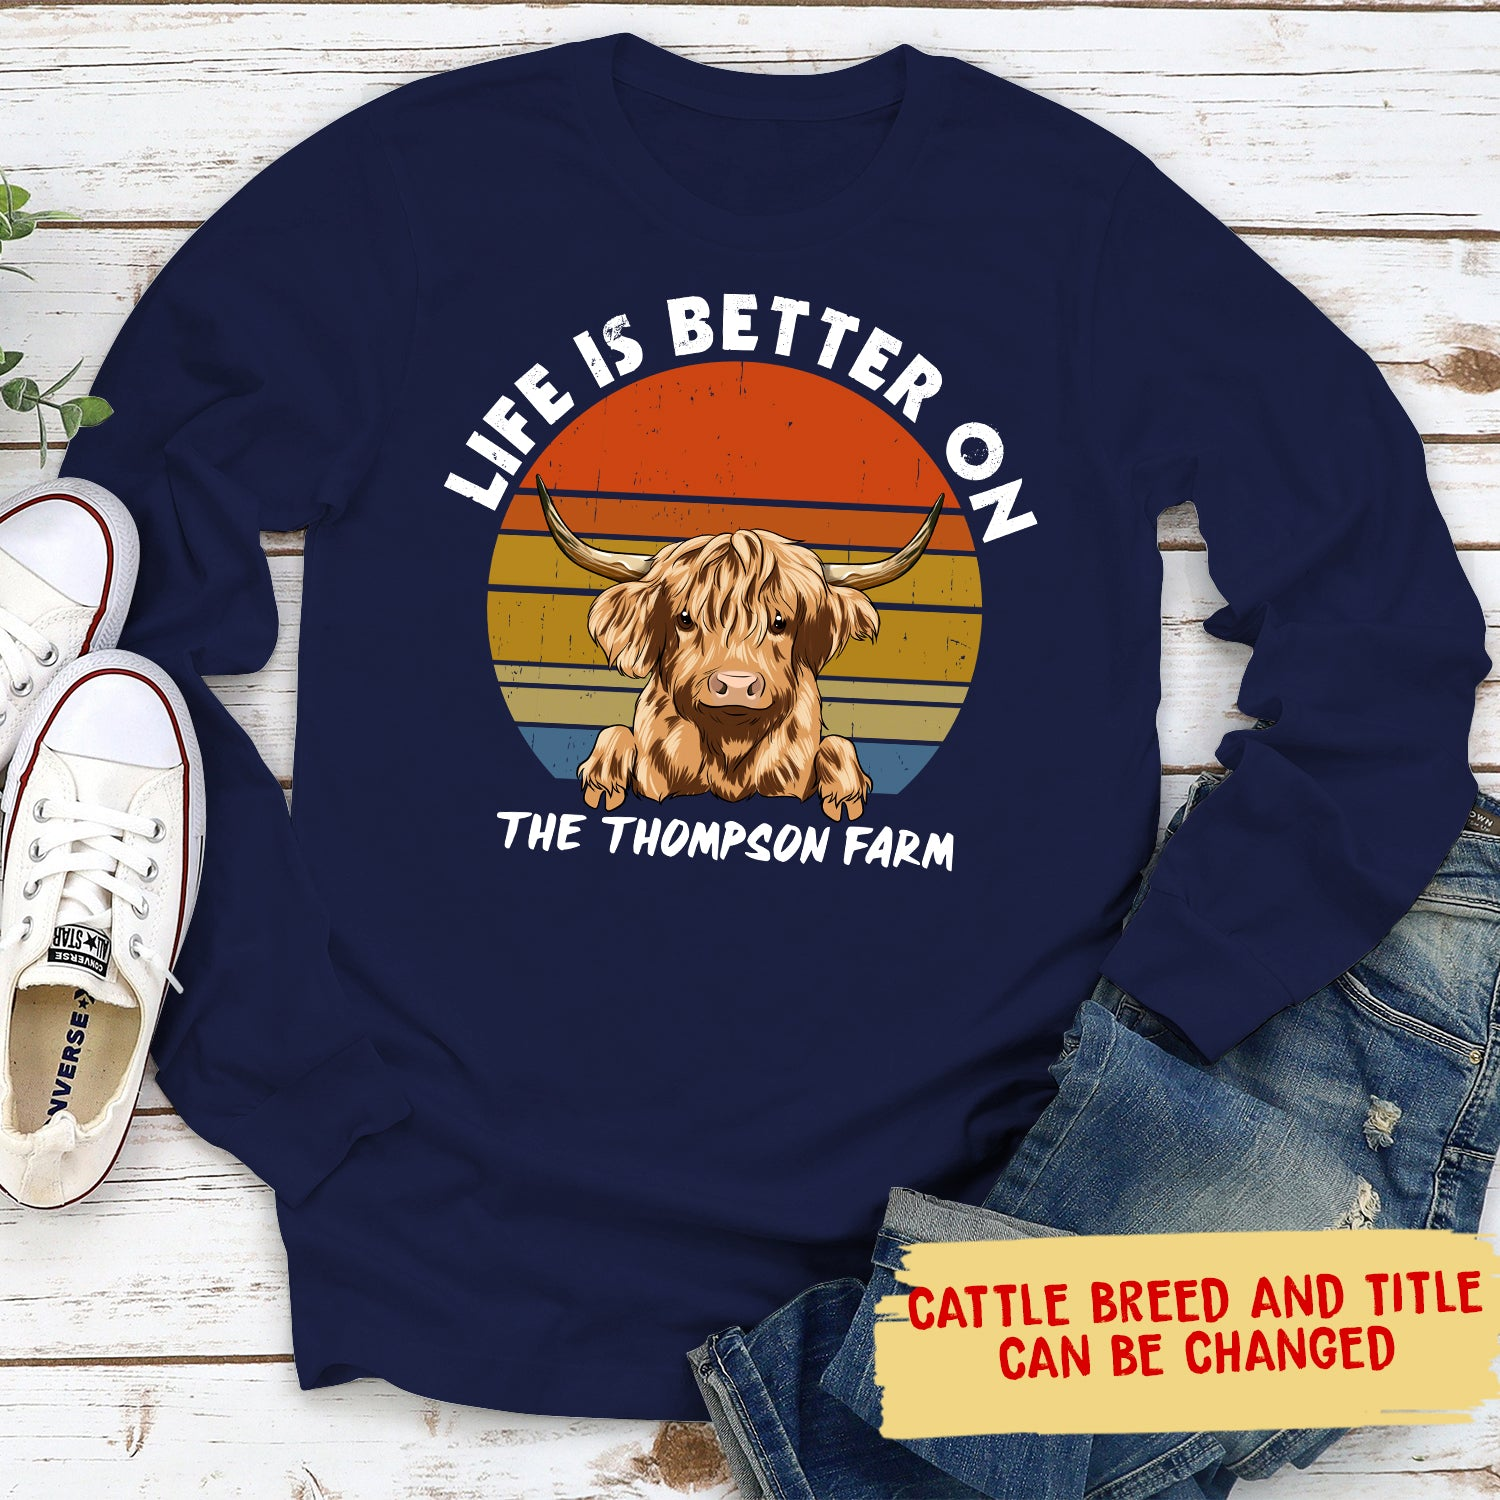 A Better Life - Personalized Custom Long Sleeve